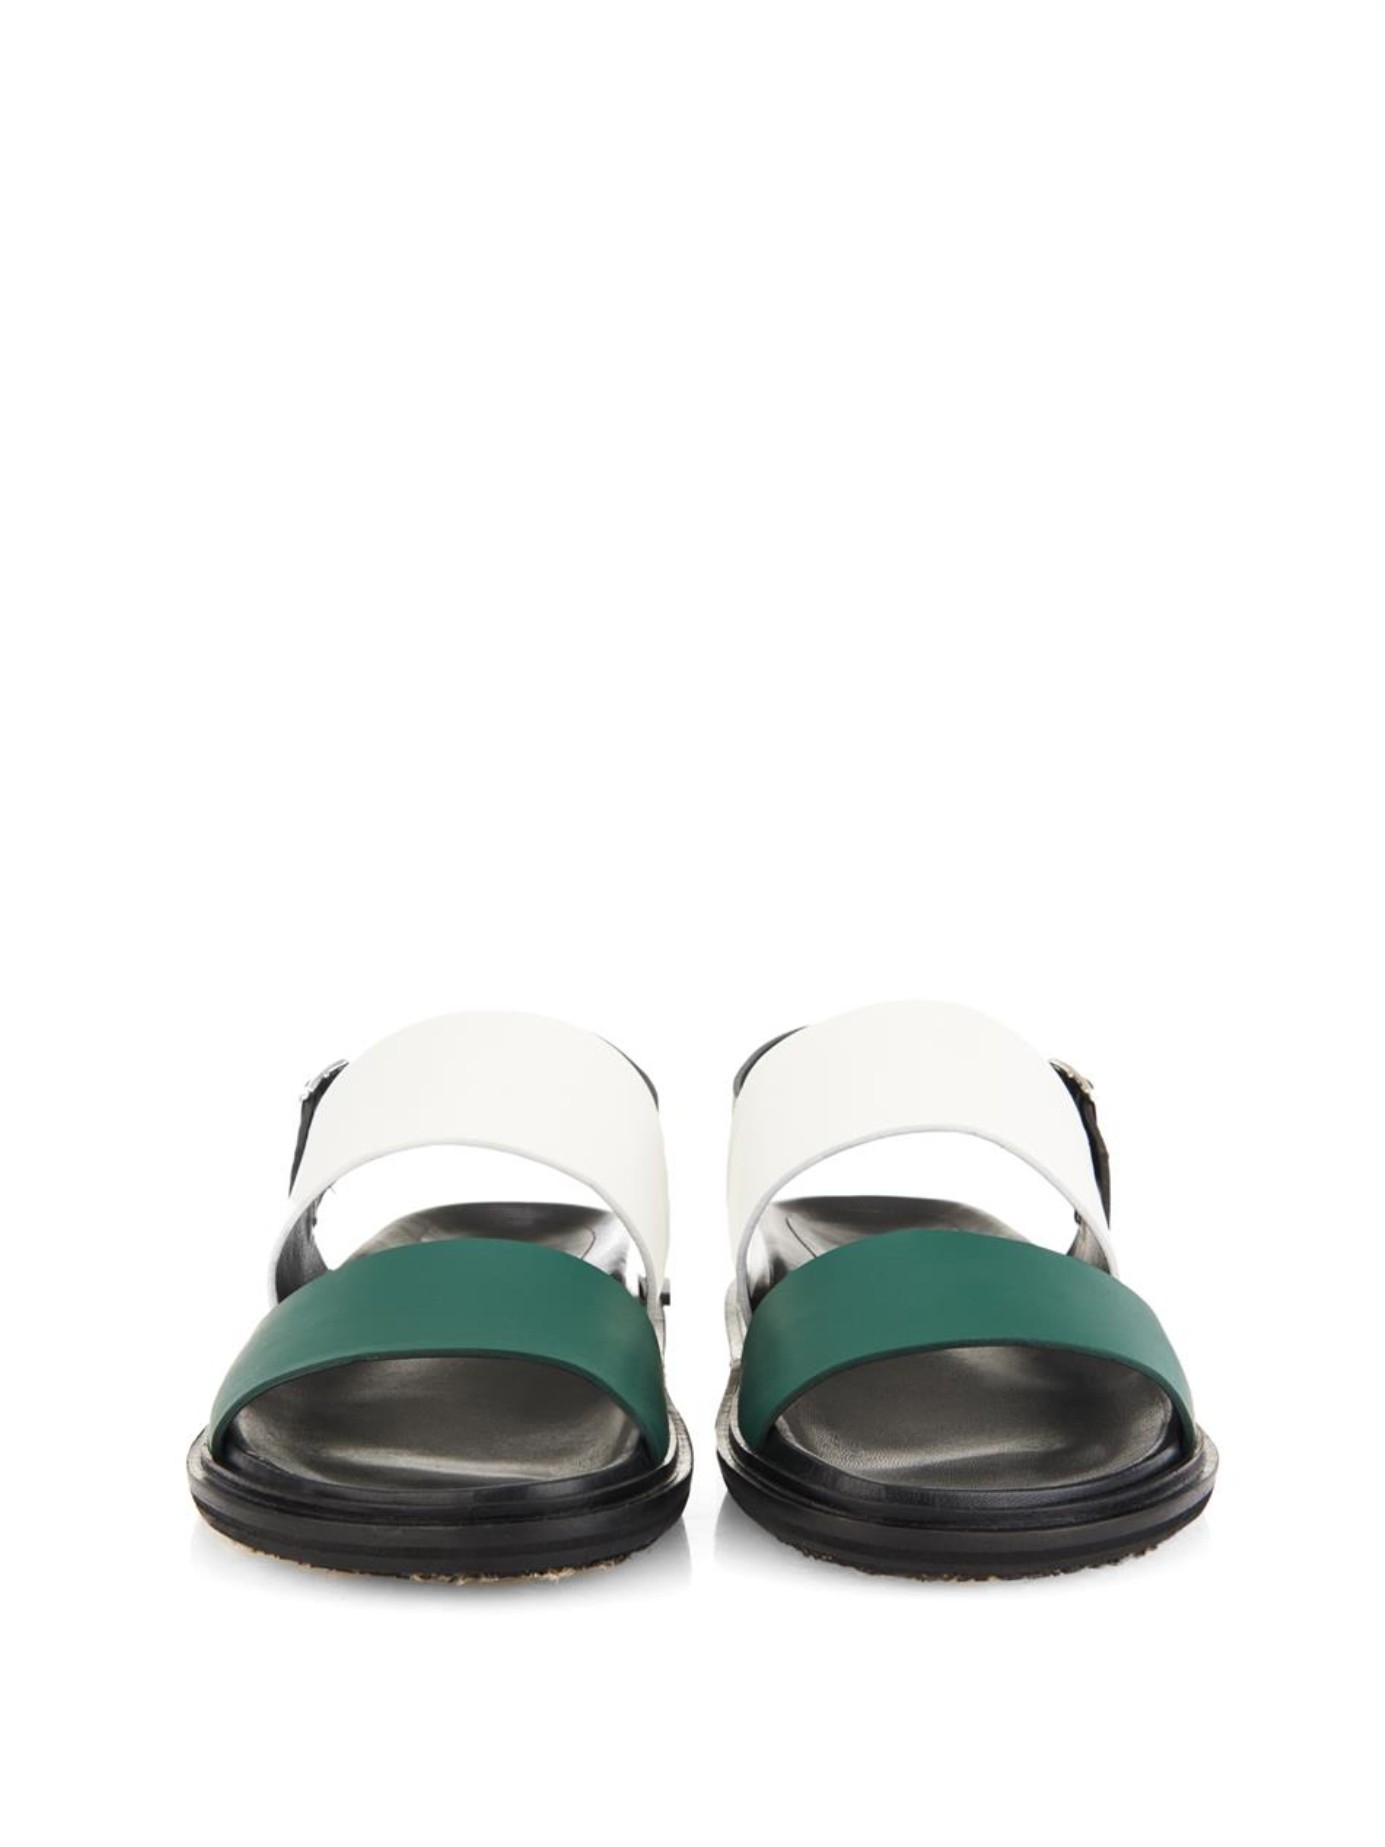 Marni Two-Tone Leather Sandals in Green for Men